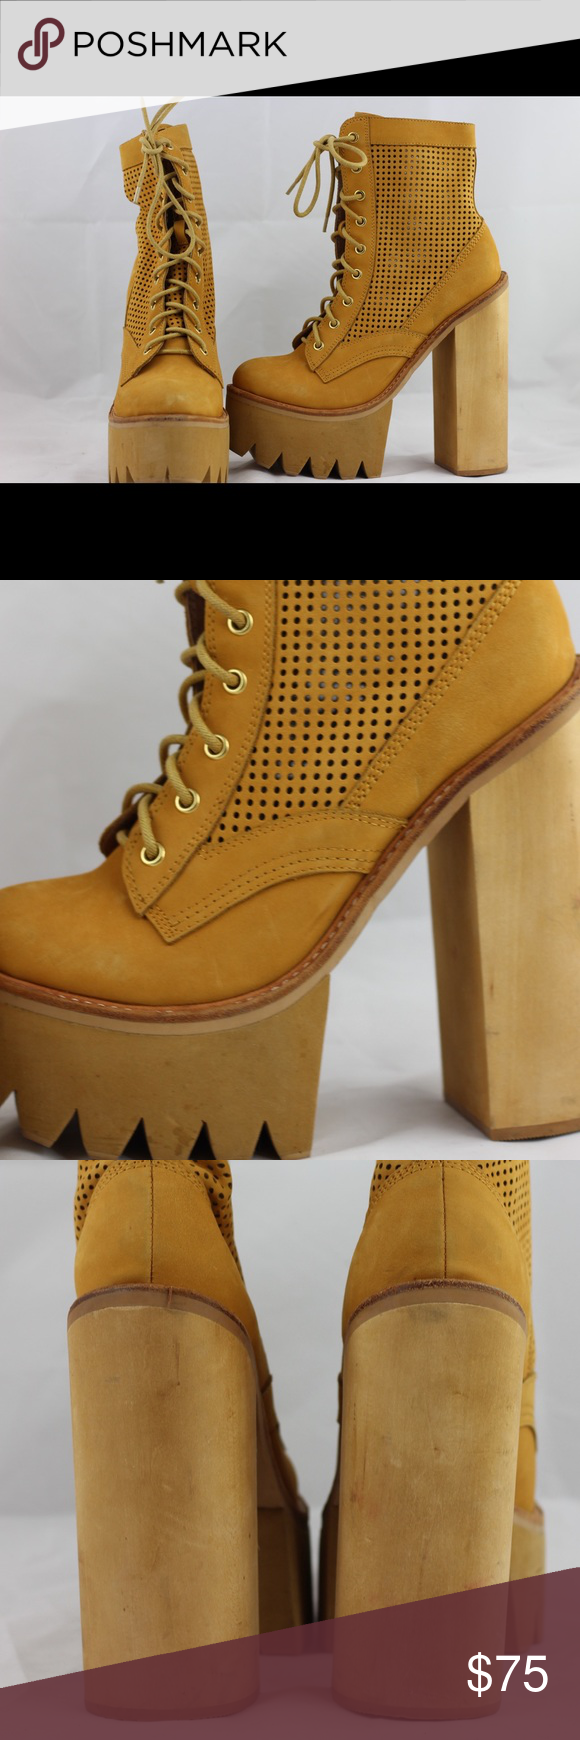 Jeffrey Campbell Boots 11 Tan/Camel colored Jeffrey Campbell heeled boots. Size 11 in excellent condition. Minor scuffing. Jeffrey Campbell Shoes Heeled Boots